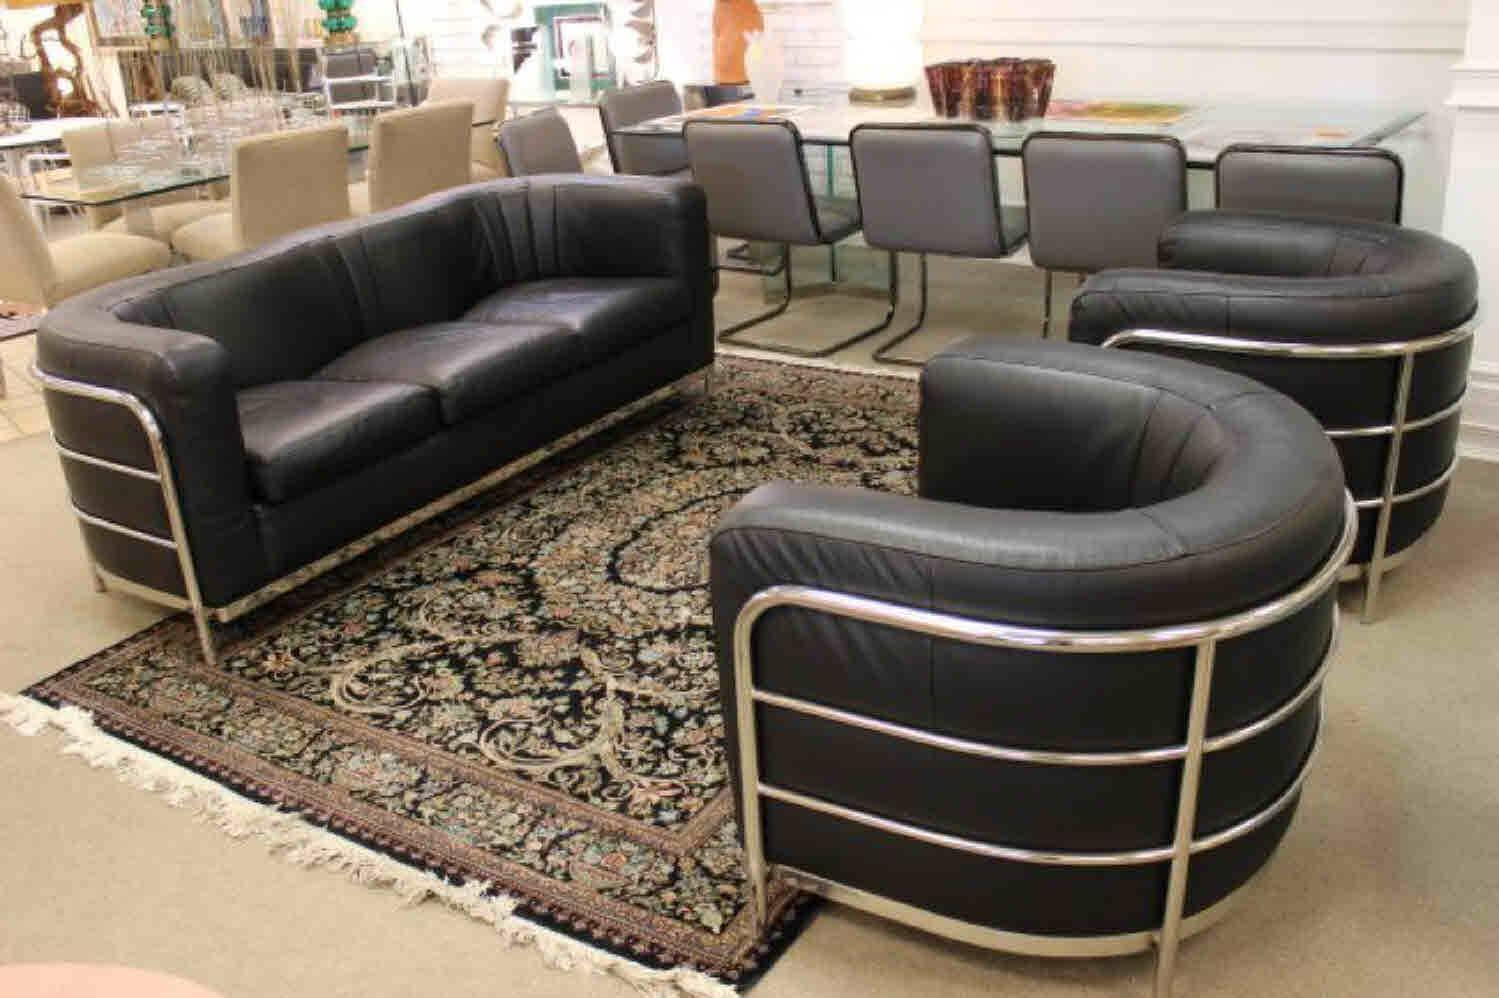 Zanotta 1980s Three Piece Living Room Suite Pair Of Chairs And Sofa At 1stdibs